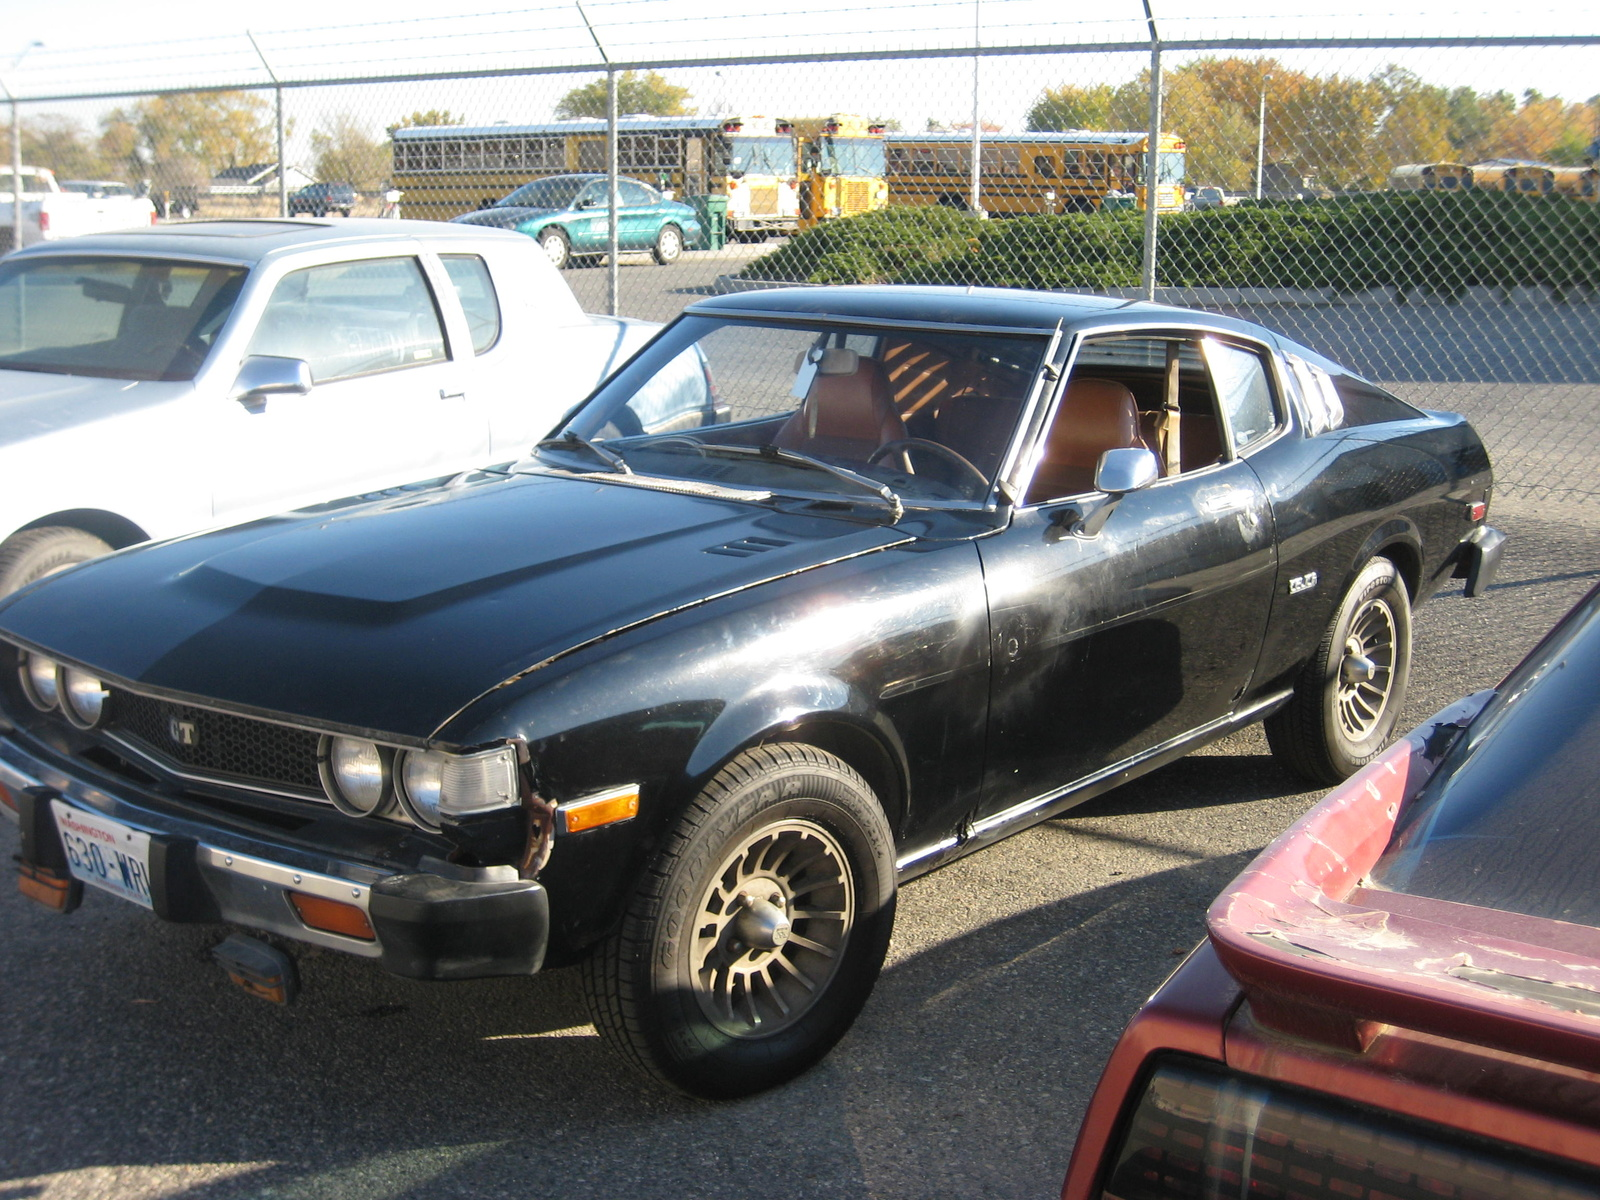 1977 Toyota Celica For Sale: 1977 Toyota Celica Gt Coupe For Sale